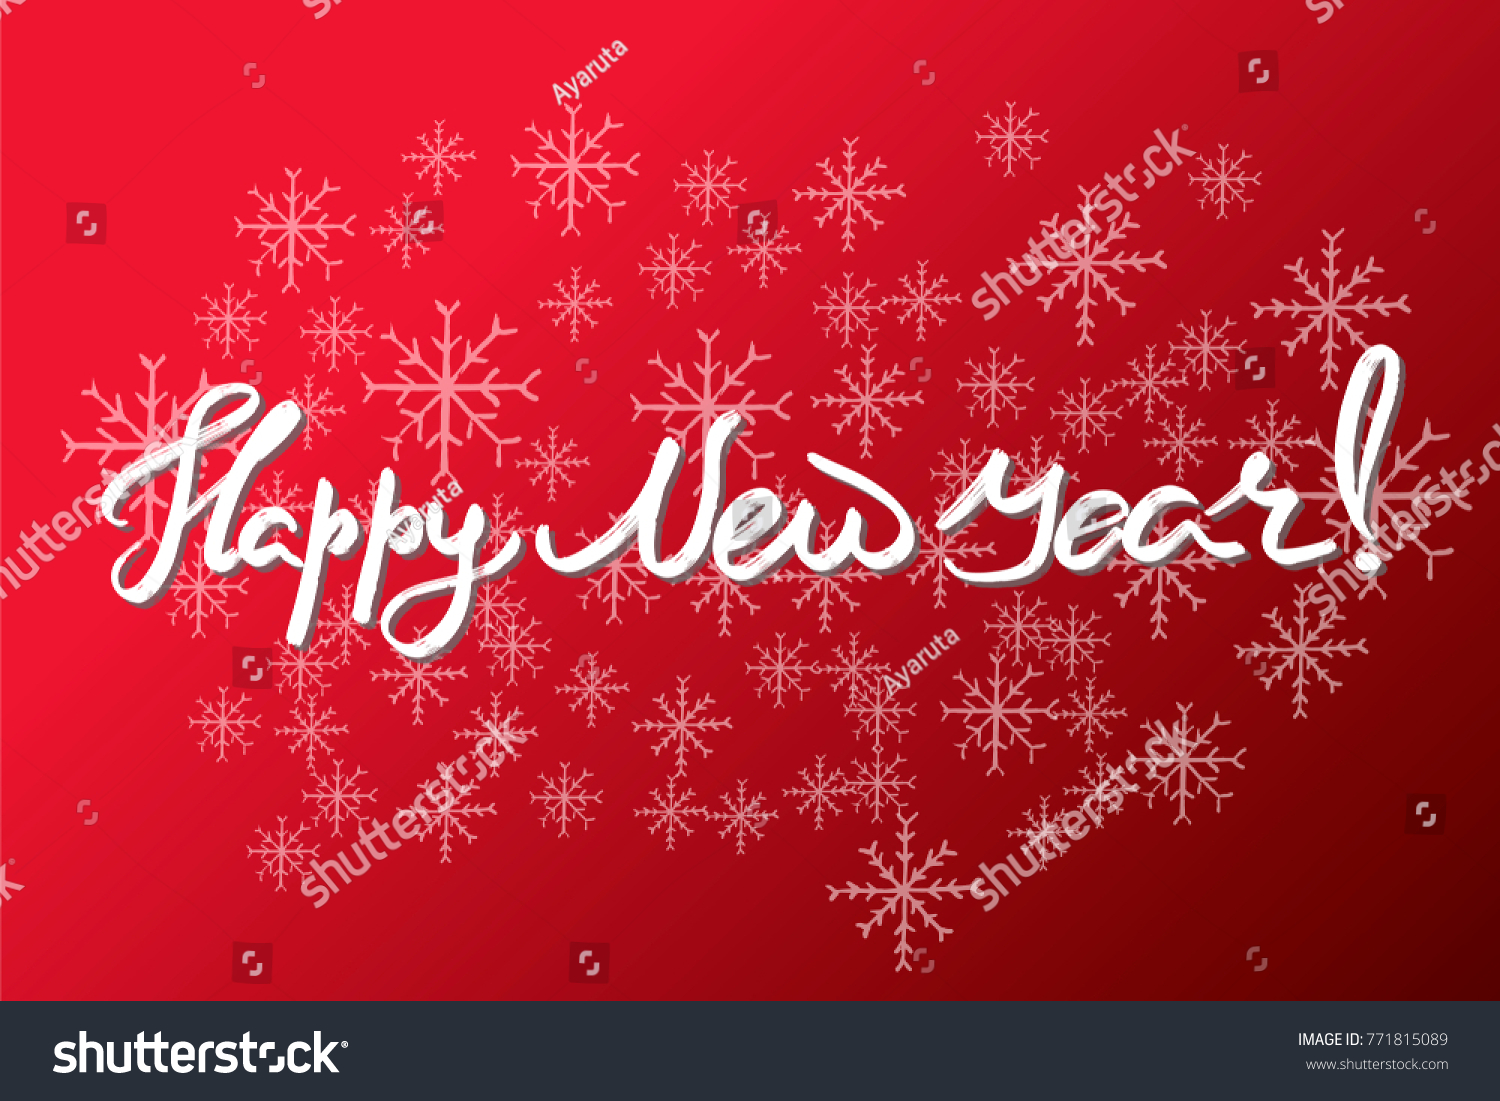 Happy New Year Hand Drawn Lettering Stock Vector (Royalty Free ...